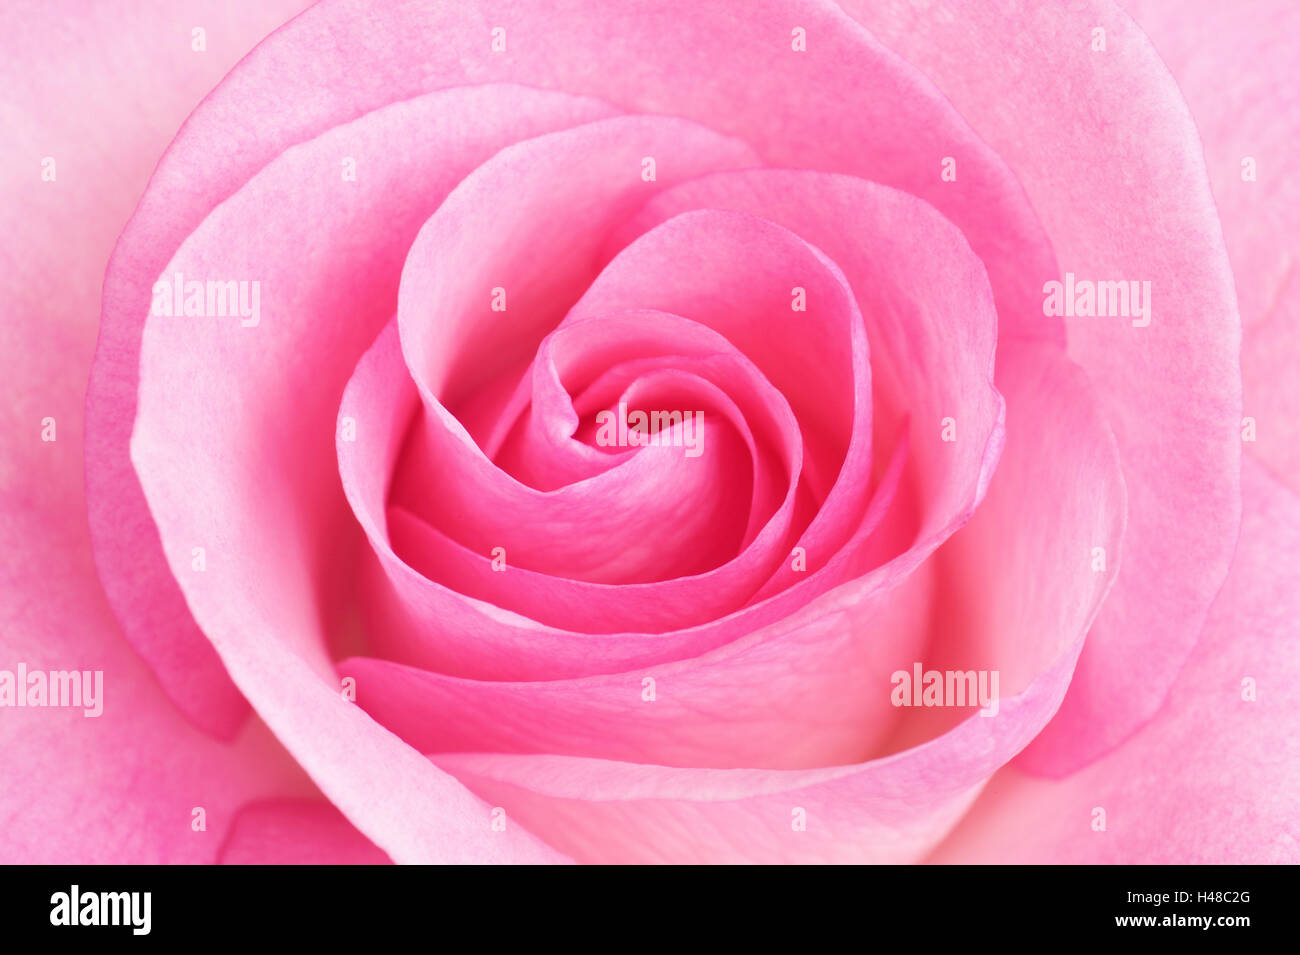 Rose blossom, pink, close up, - Stock Image